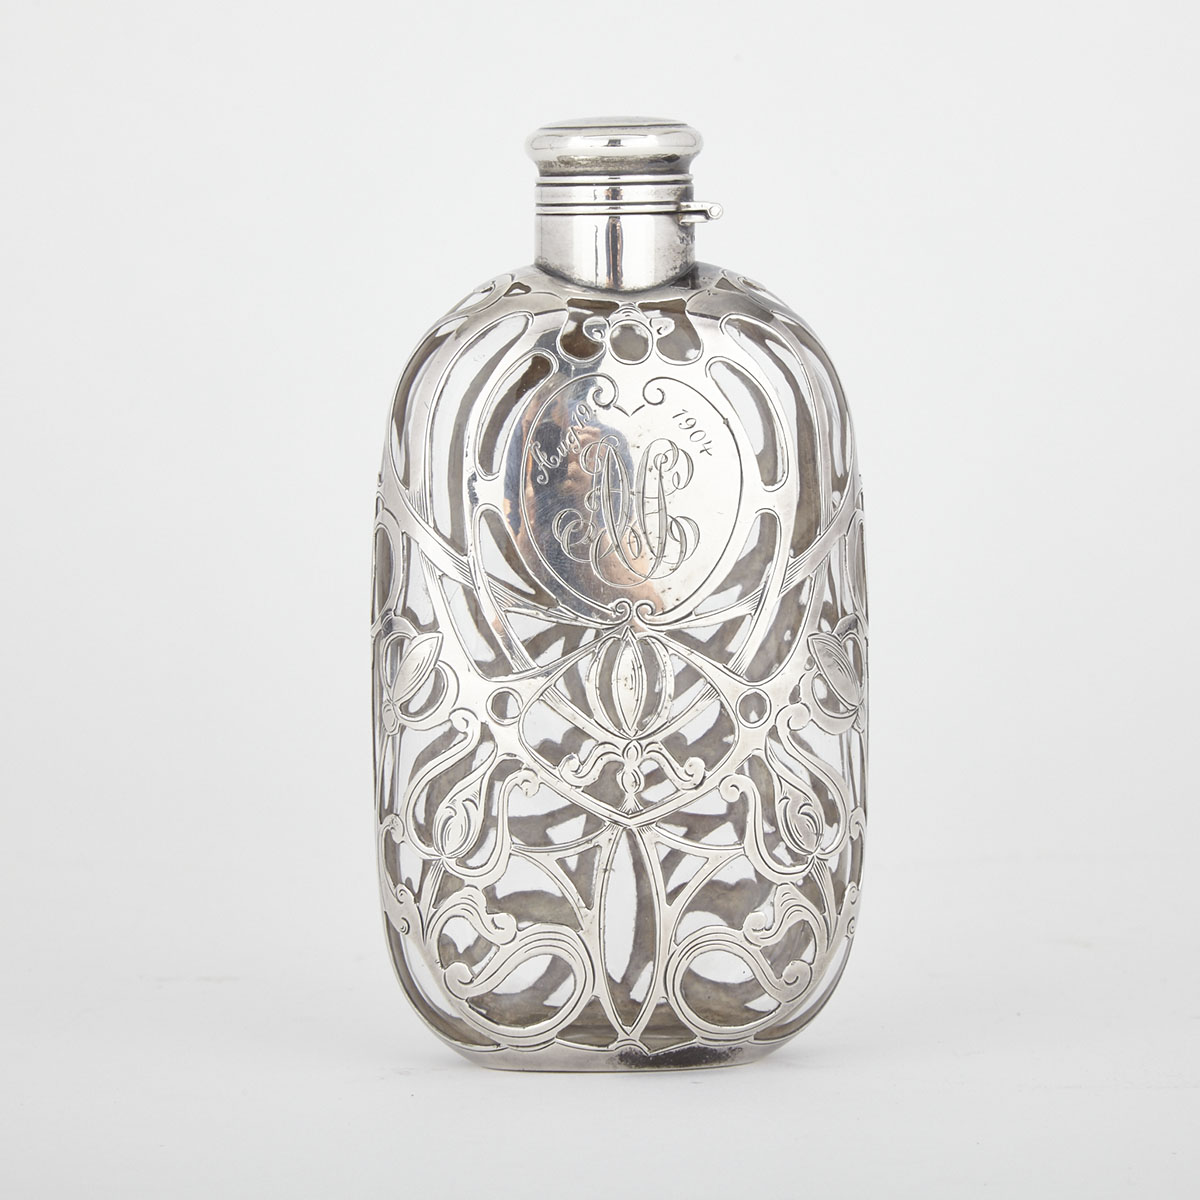 American Silver Overlaid Glass Spirit Flask, Gorham Mfg. Co., Providence, R.I., c.1900